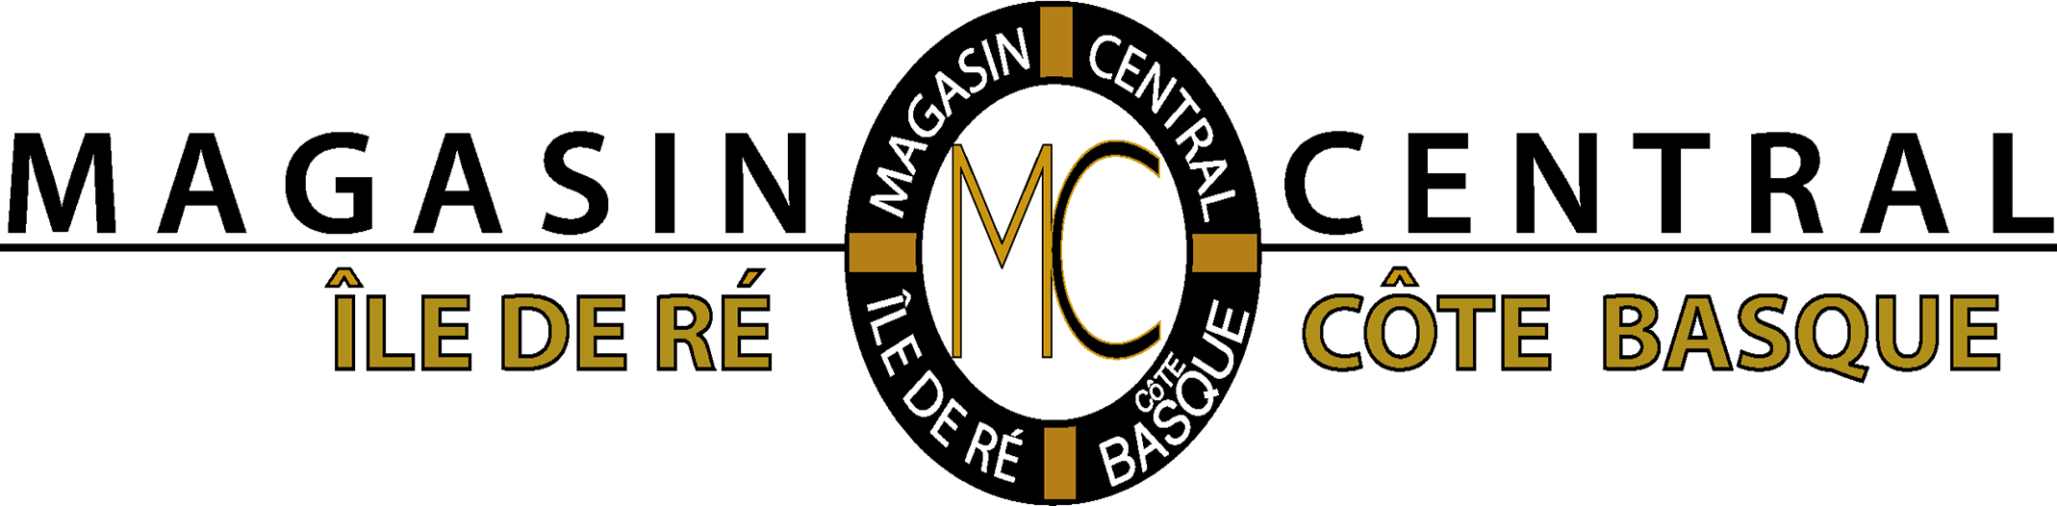 Magasin Central